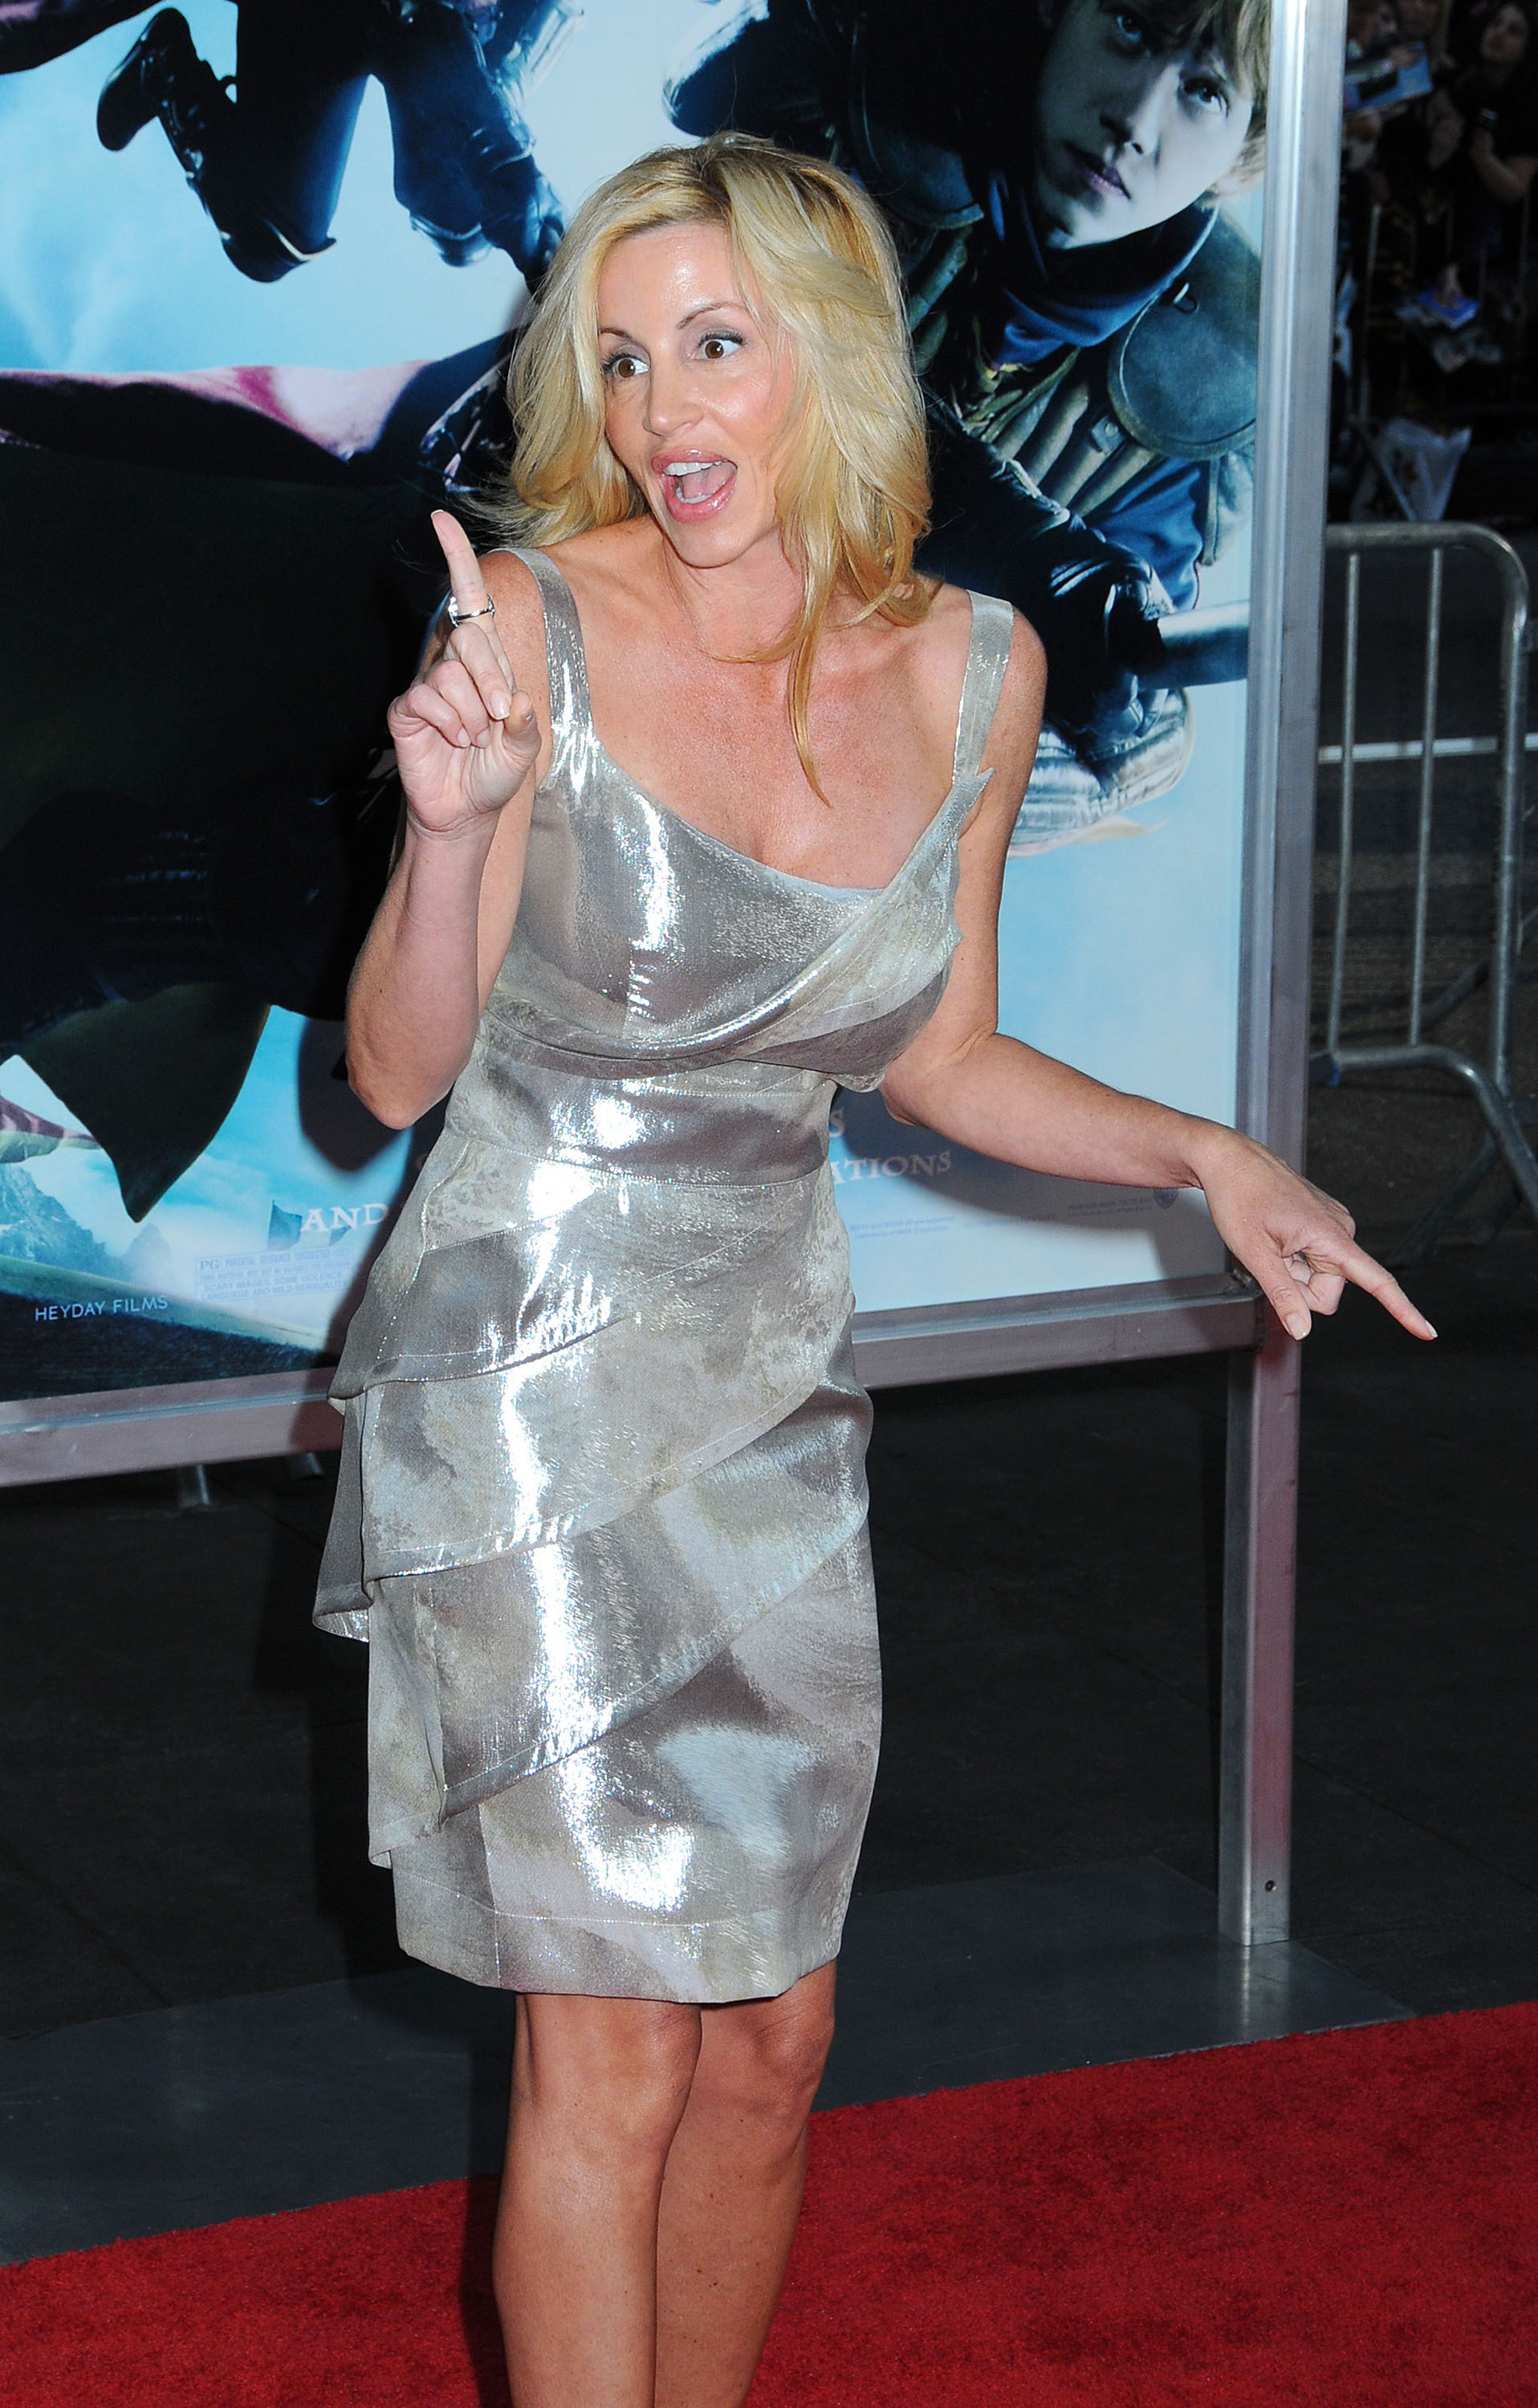 Top 5 Most Spoiled Quotes from Beverly Hills Housewife Camille Grammer